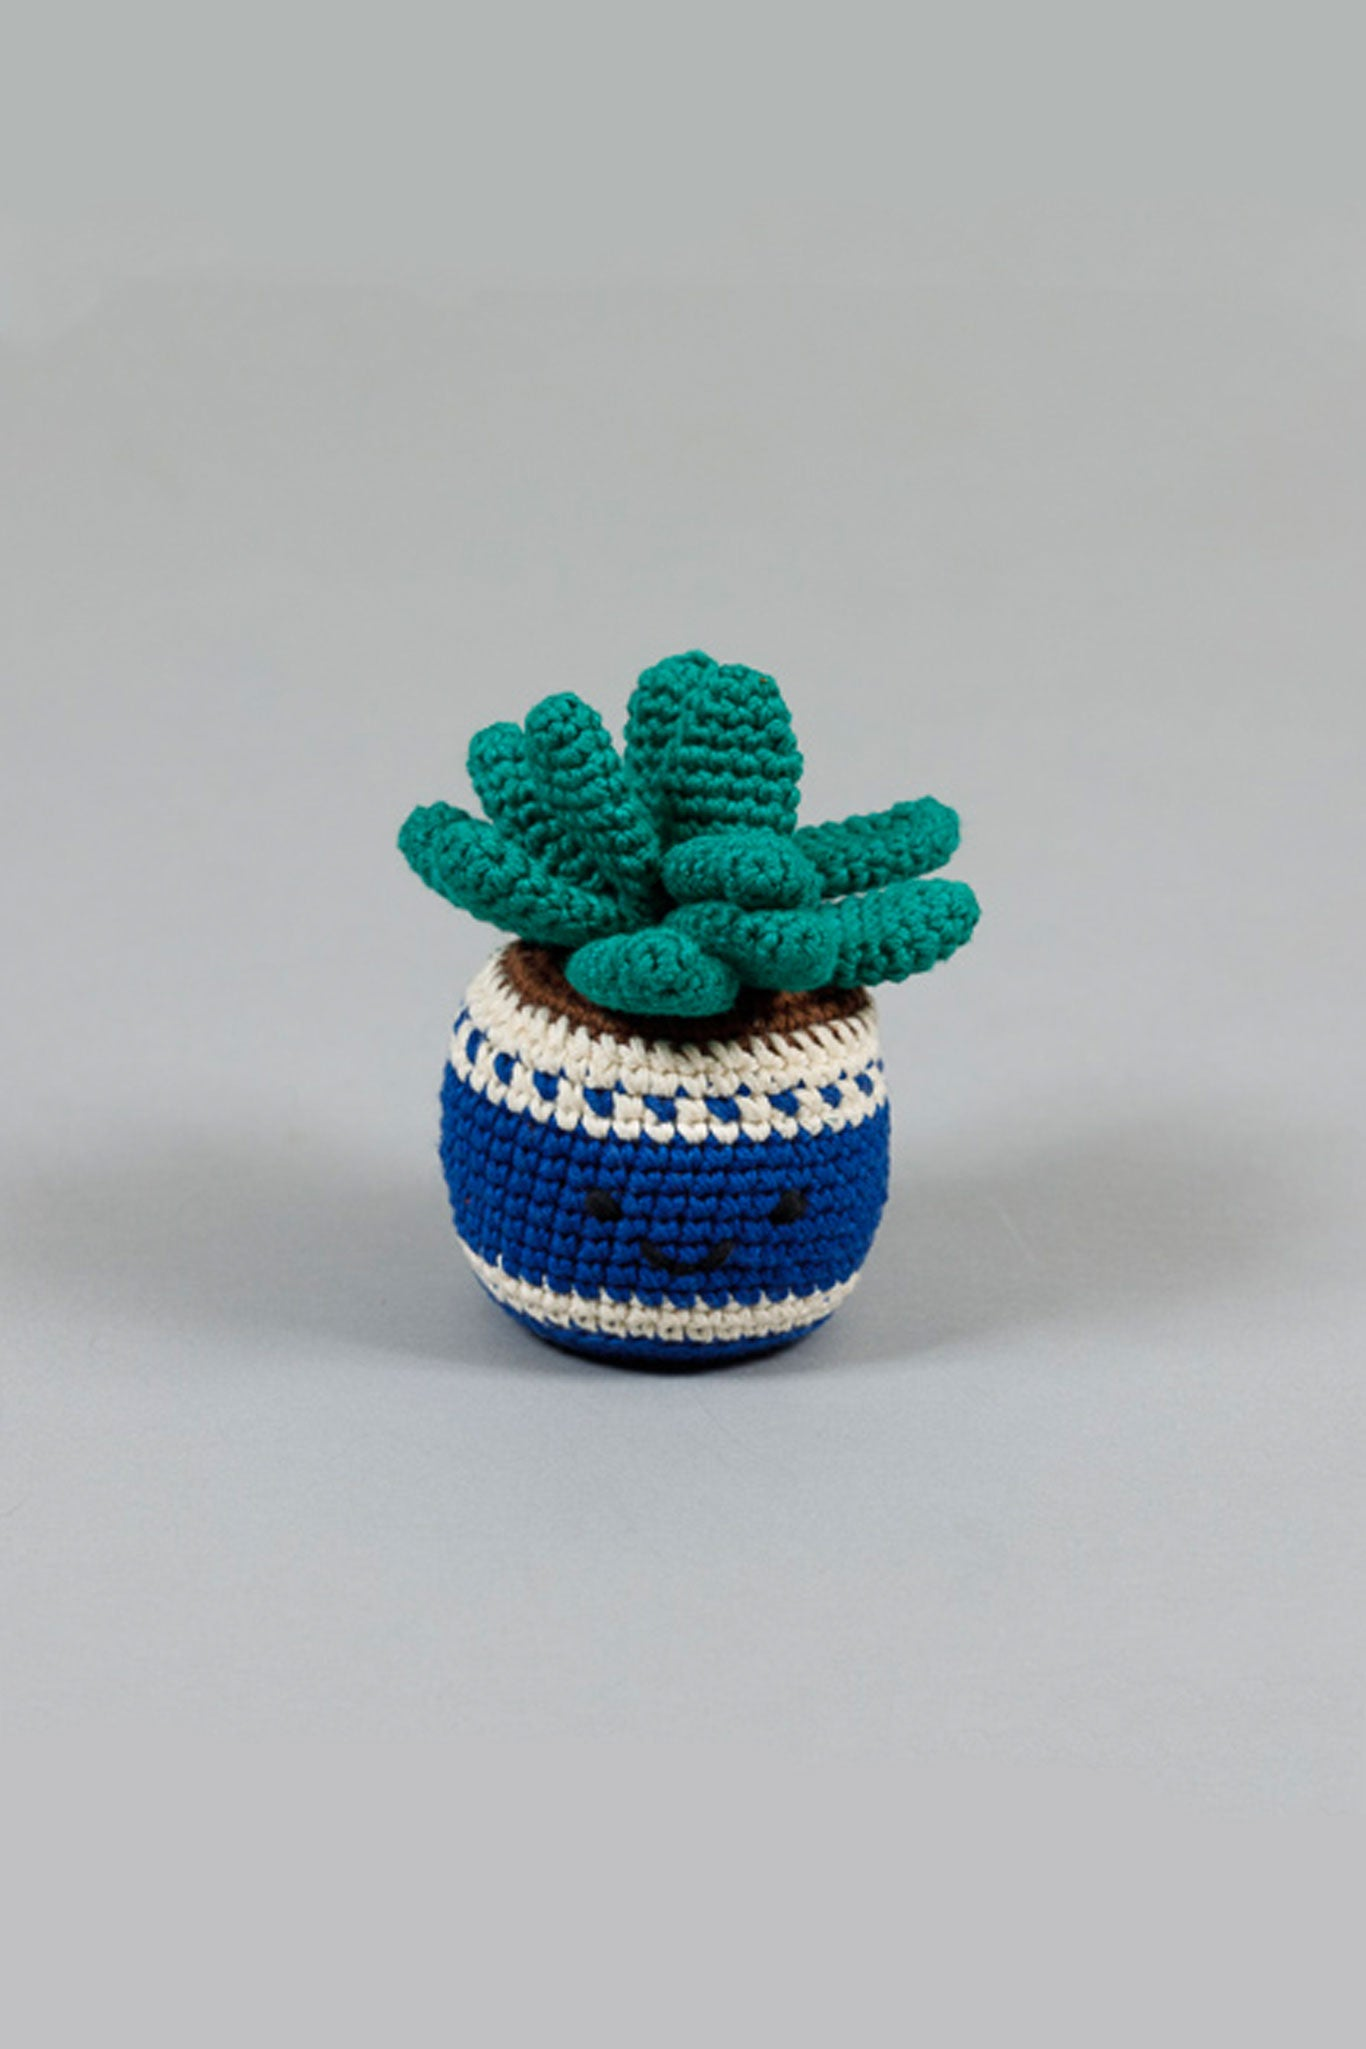 Ware of the Dog Crochet Potted Cactus